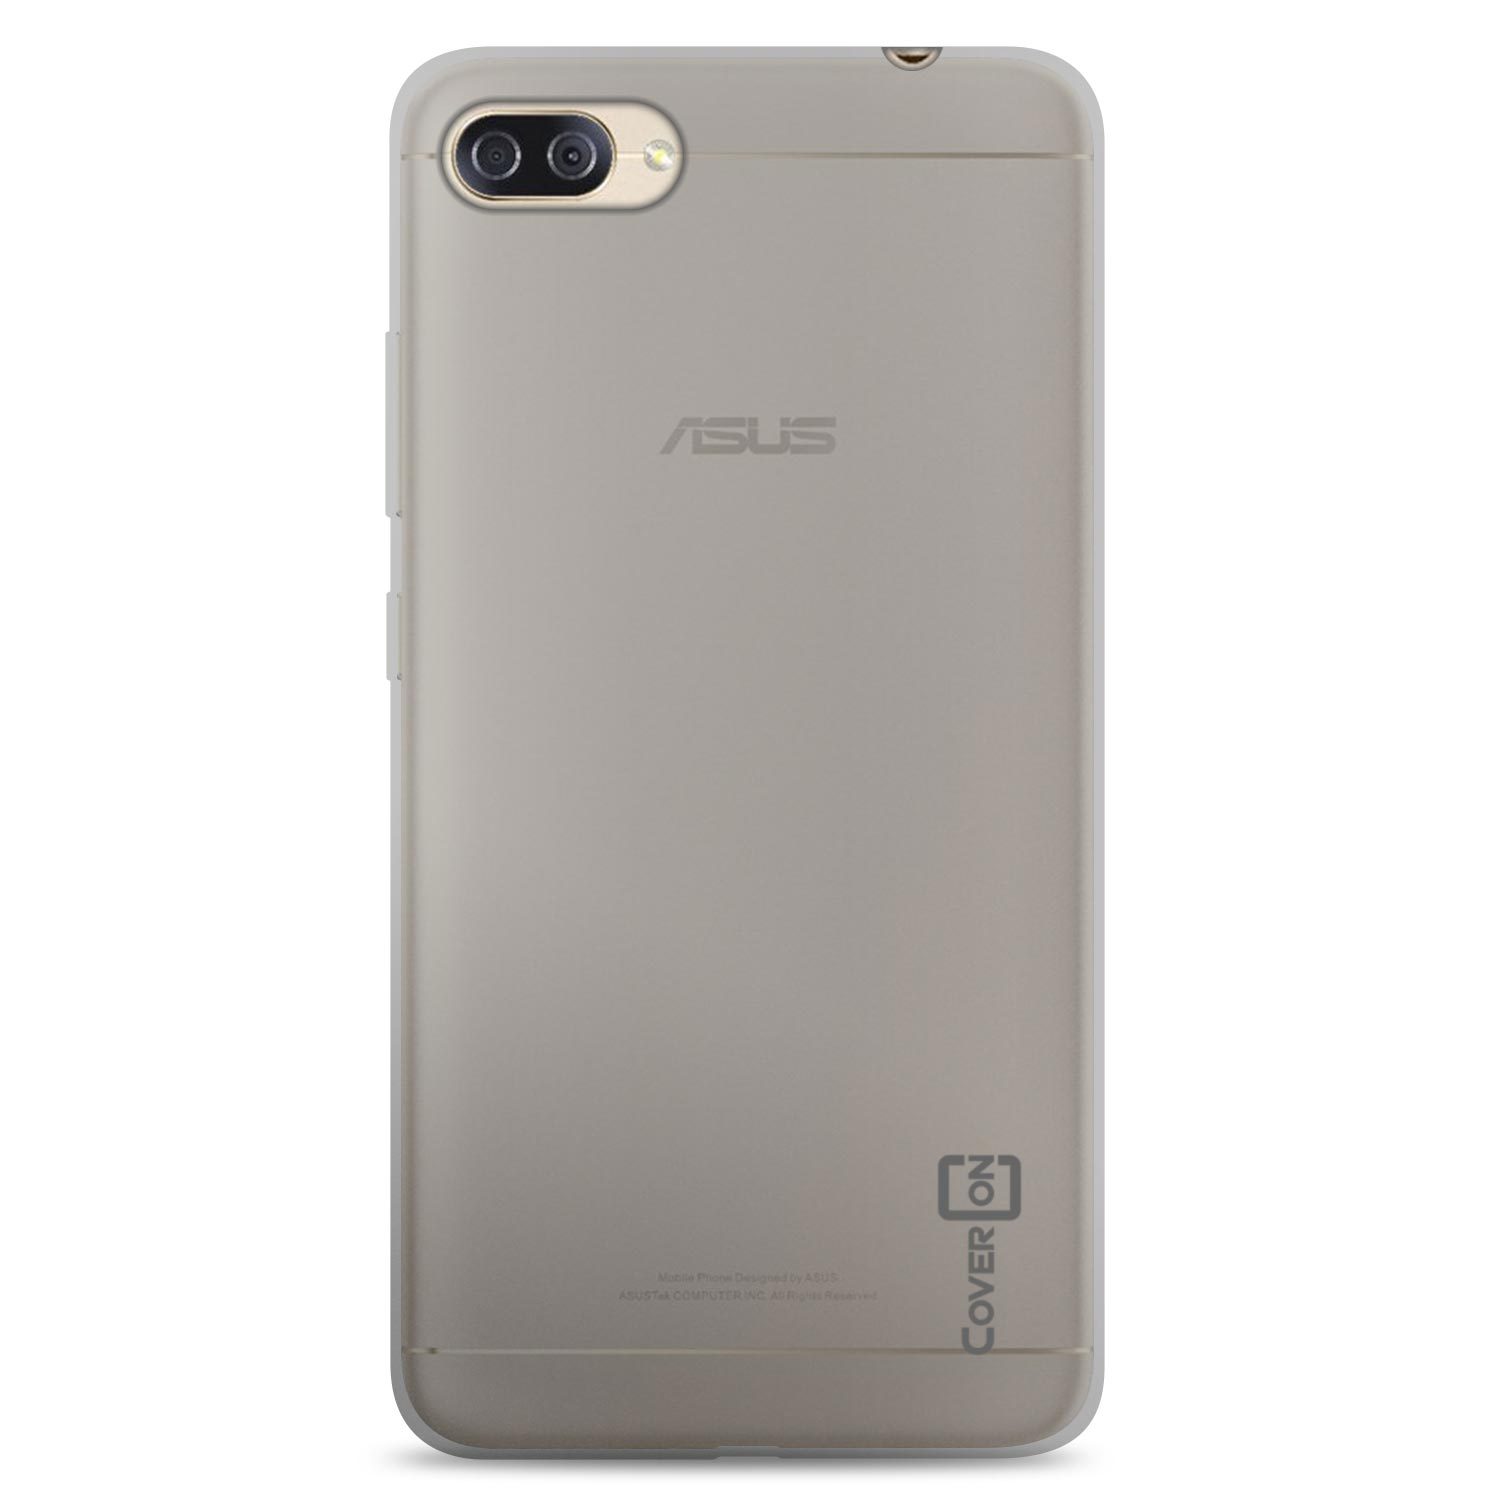 uk availability ddd79 f9f33 CoverON Asus Zenfone 4 Max (5.5